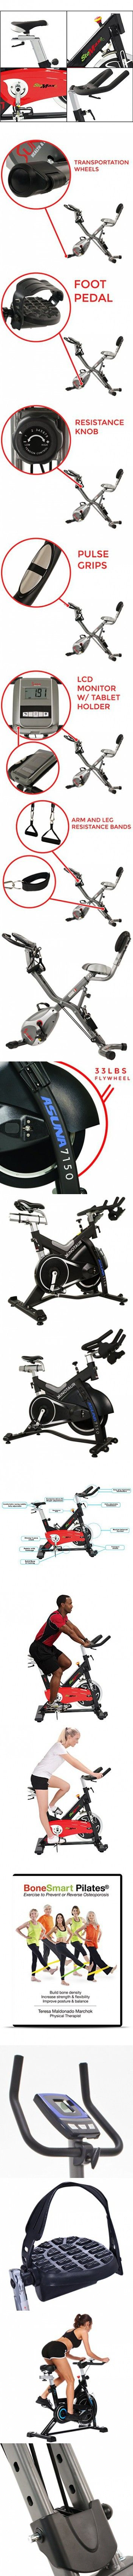 Professional Indoor Cycling Bike for Achieving Your Fitness Goals - Gym-Grade Cycle Bikes with Adjustable Seat and Heavy Duty Crank & Smooth Chain Drive Mechanism